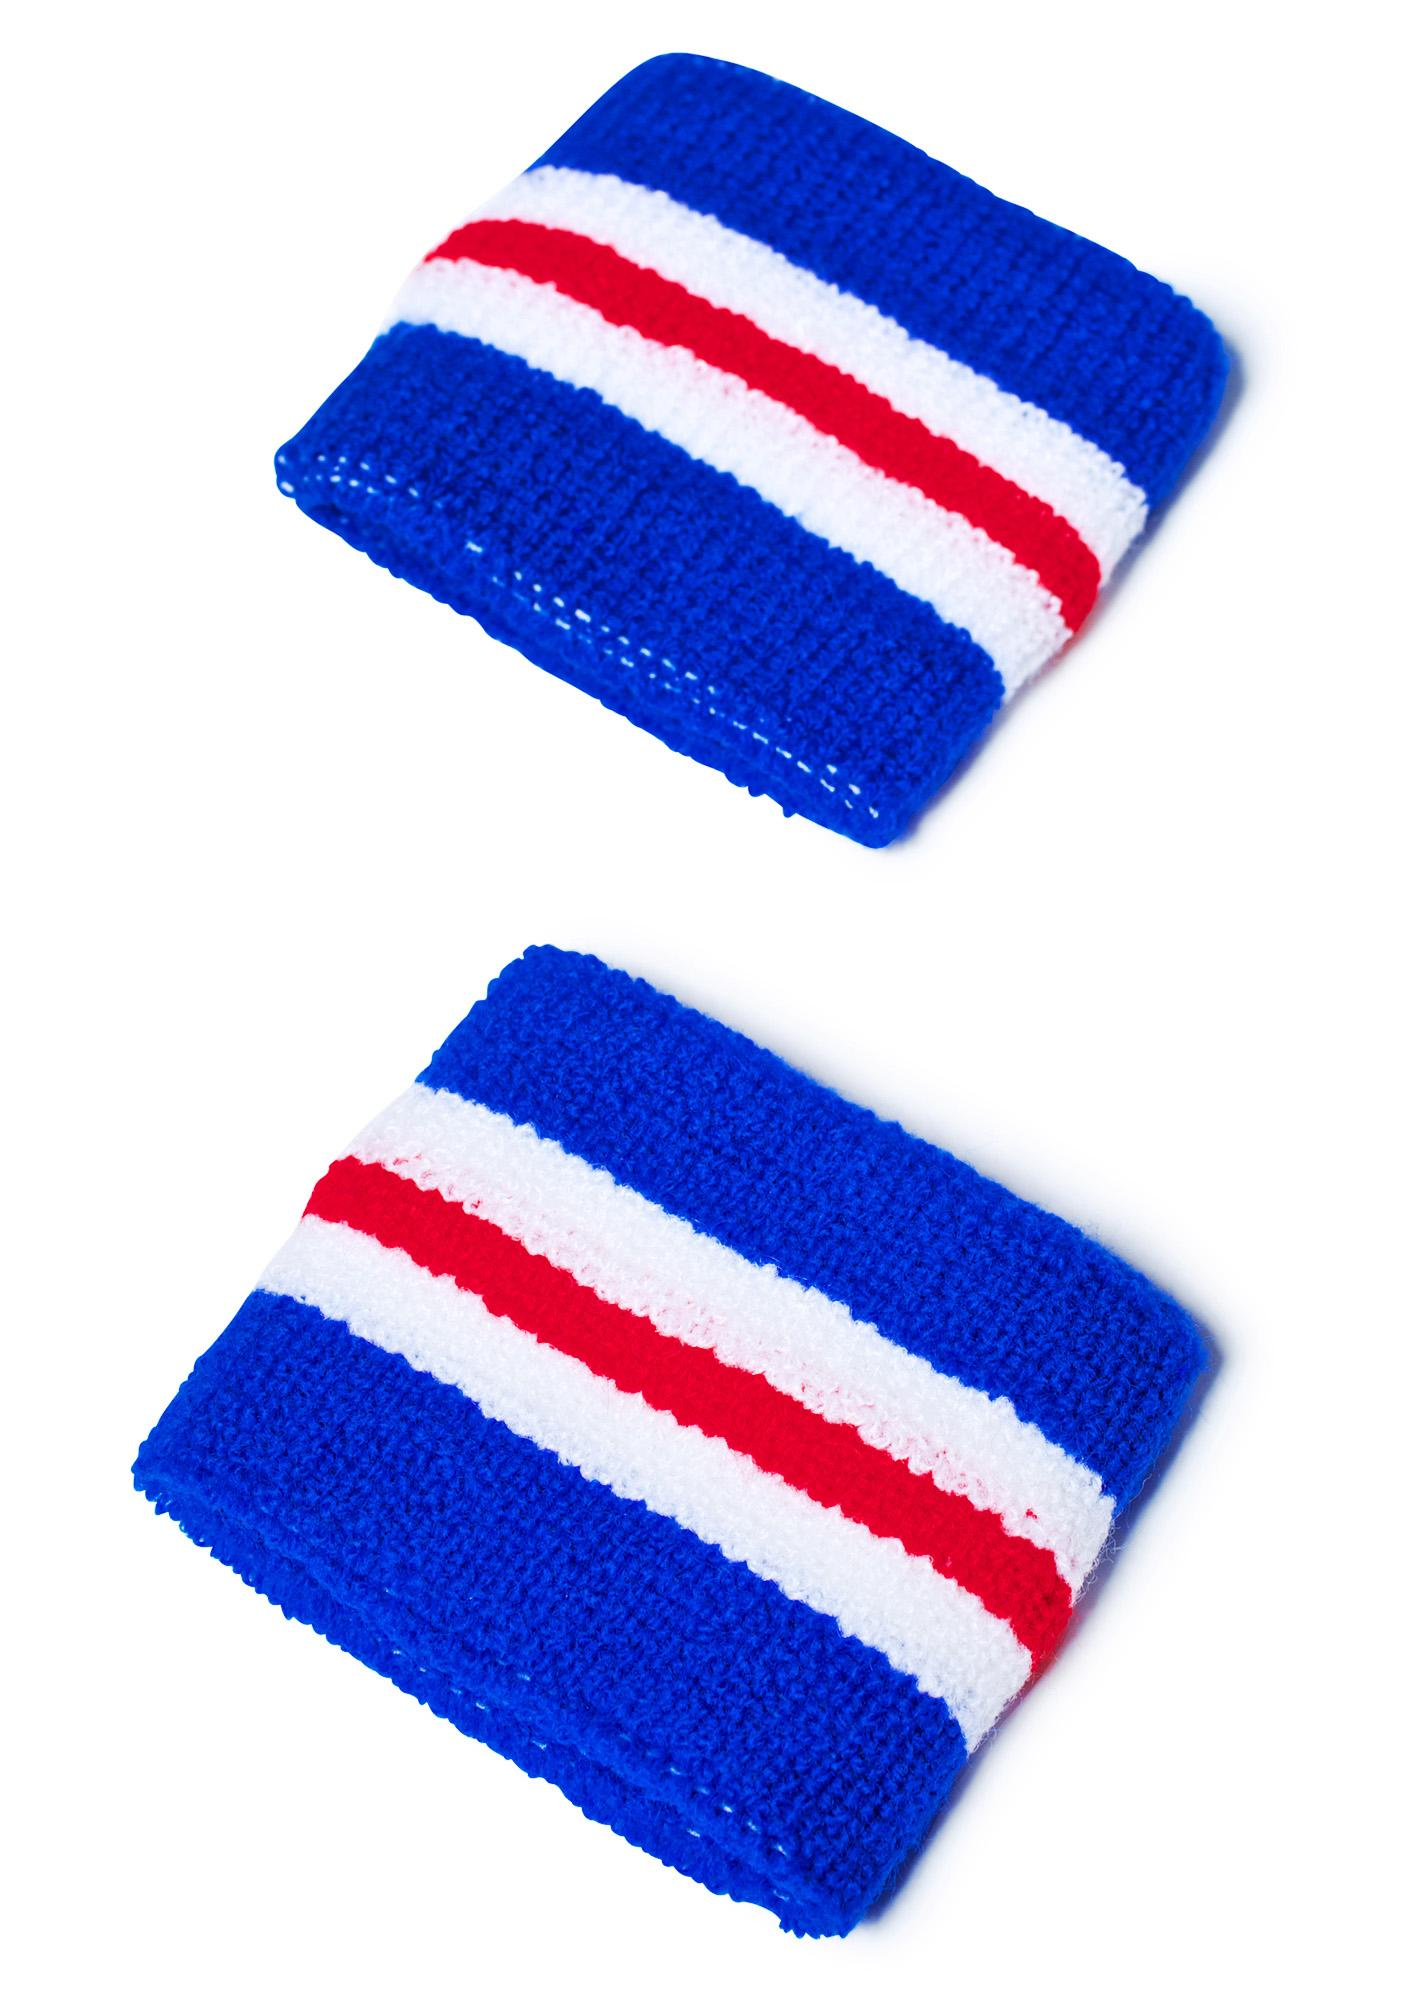 Show Your Stripes Sweatband